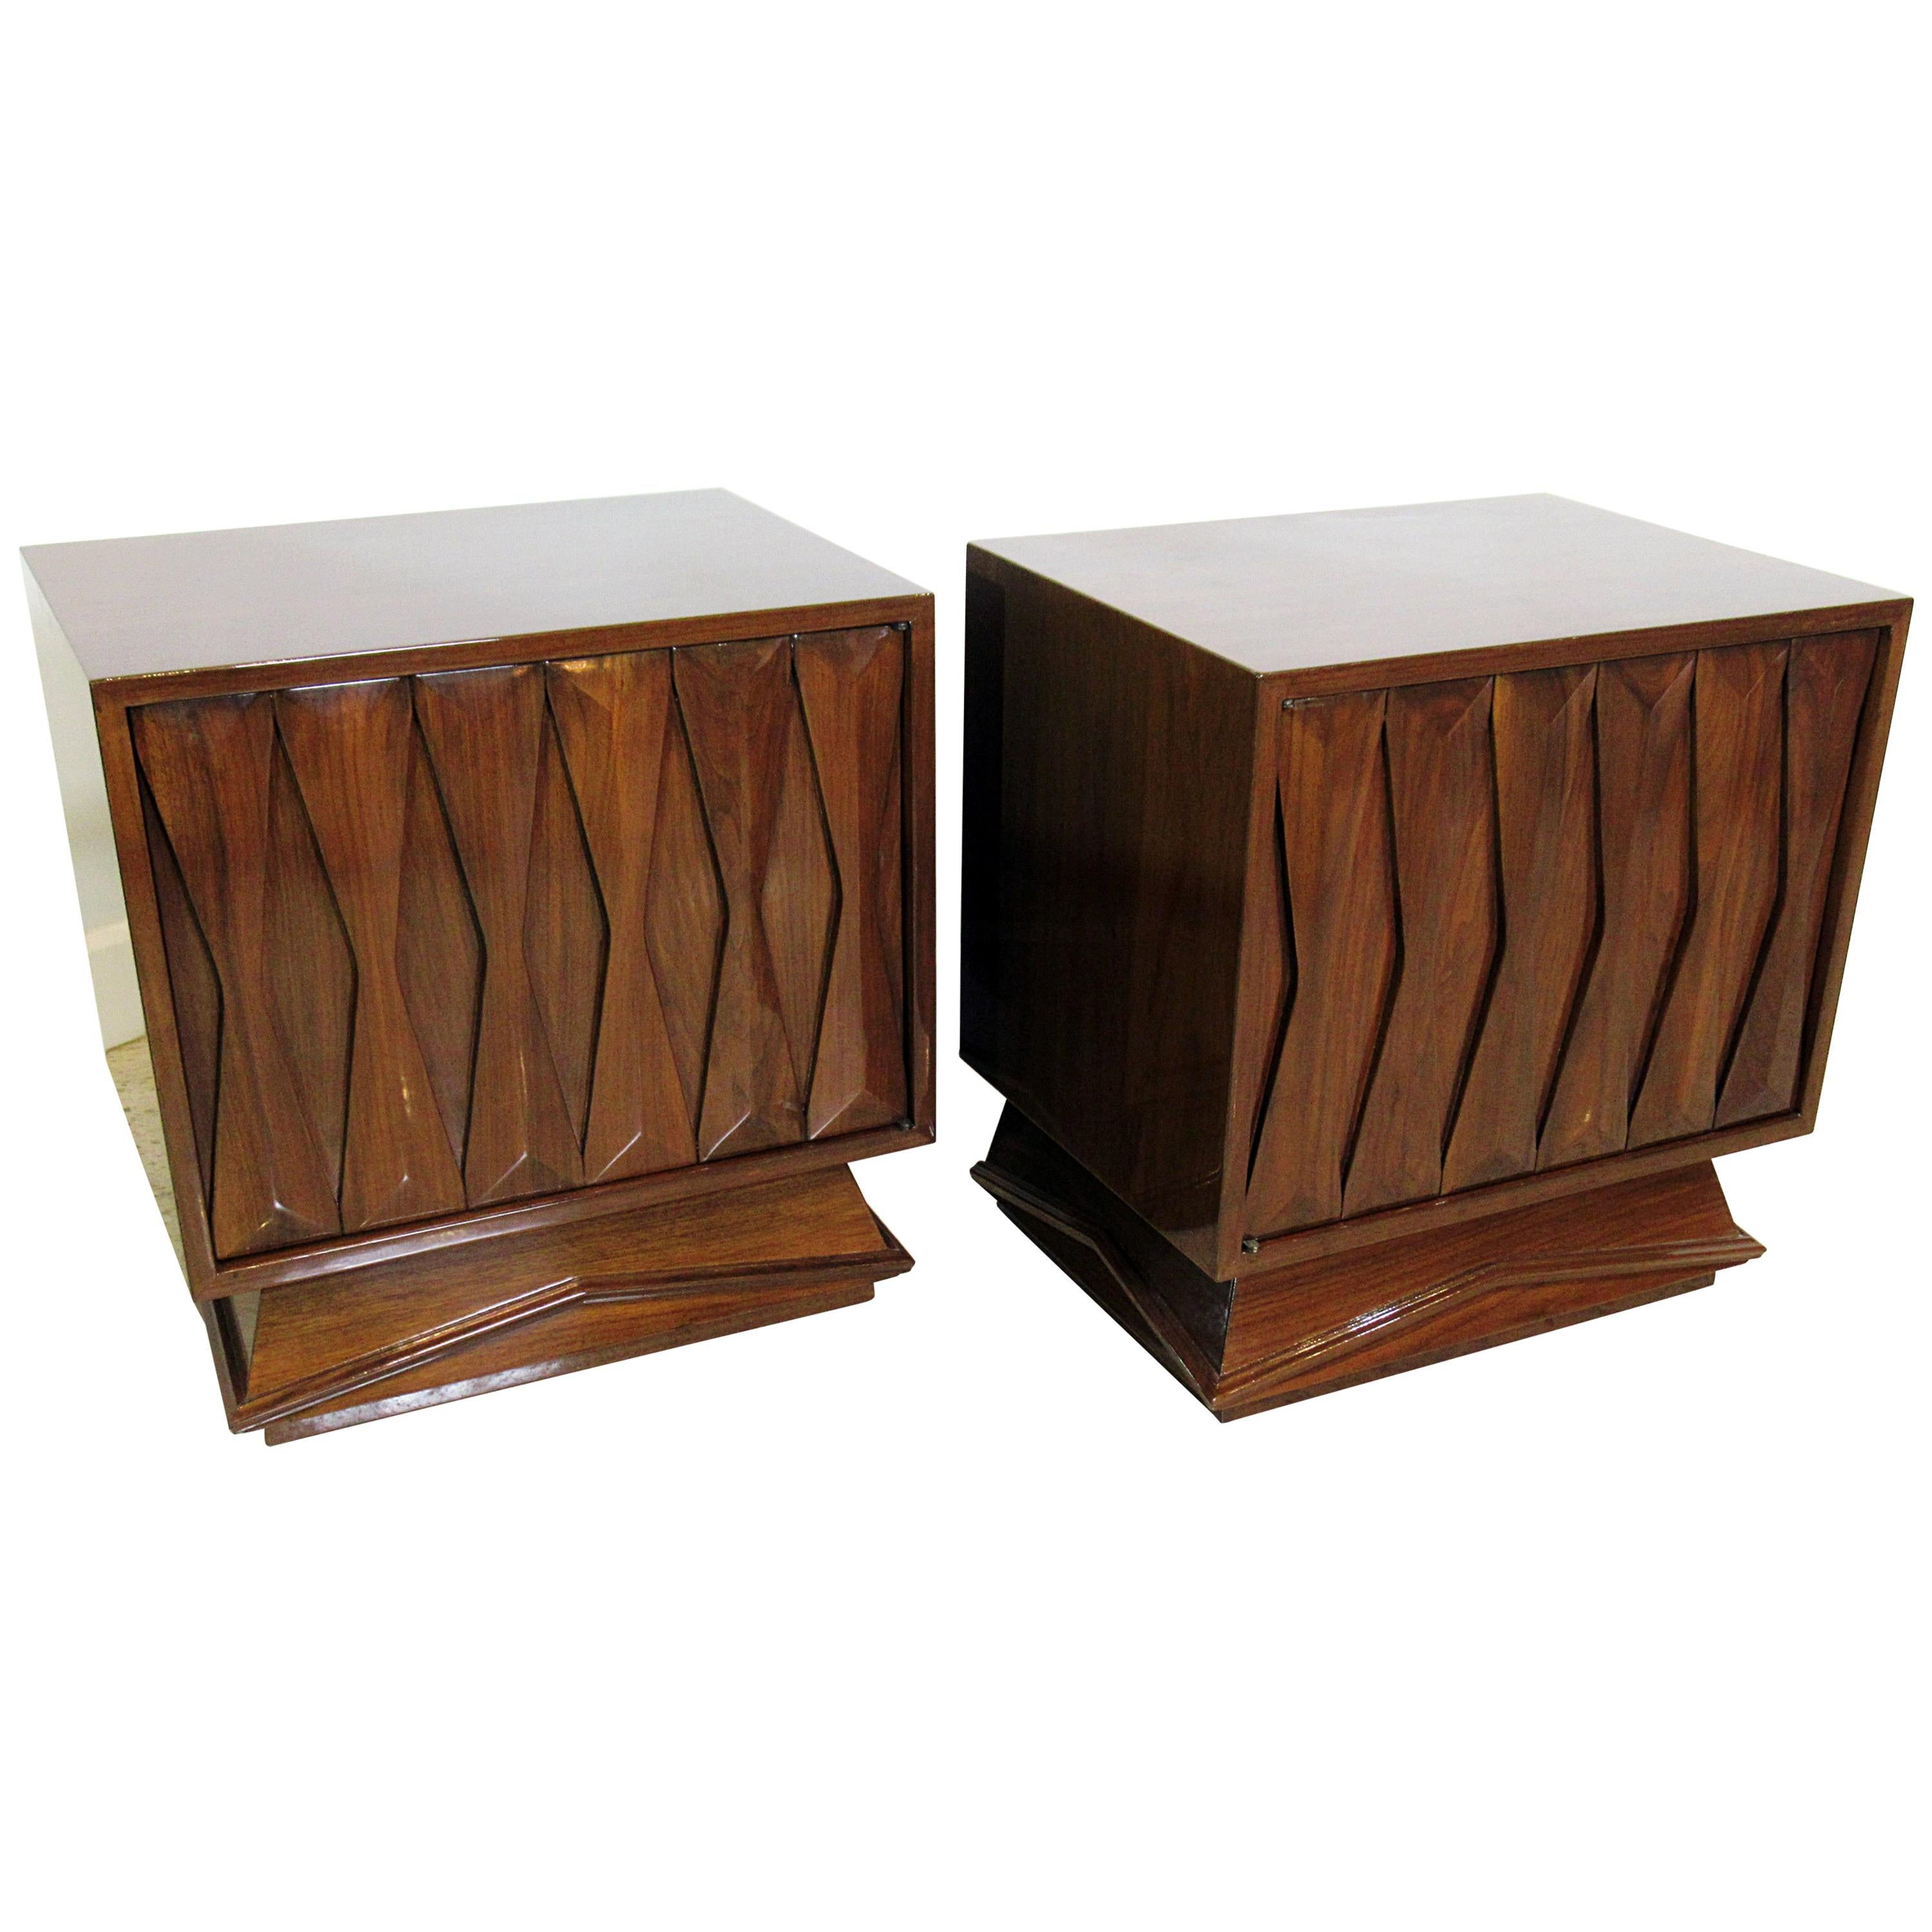 Pair Of Italian Modern Walnut Bedside Tables, Style Of Gio Ponti, 1950s